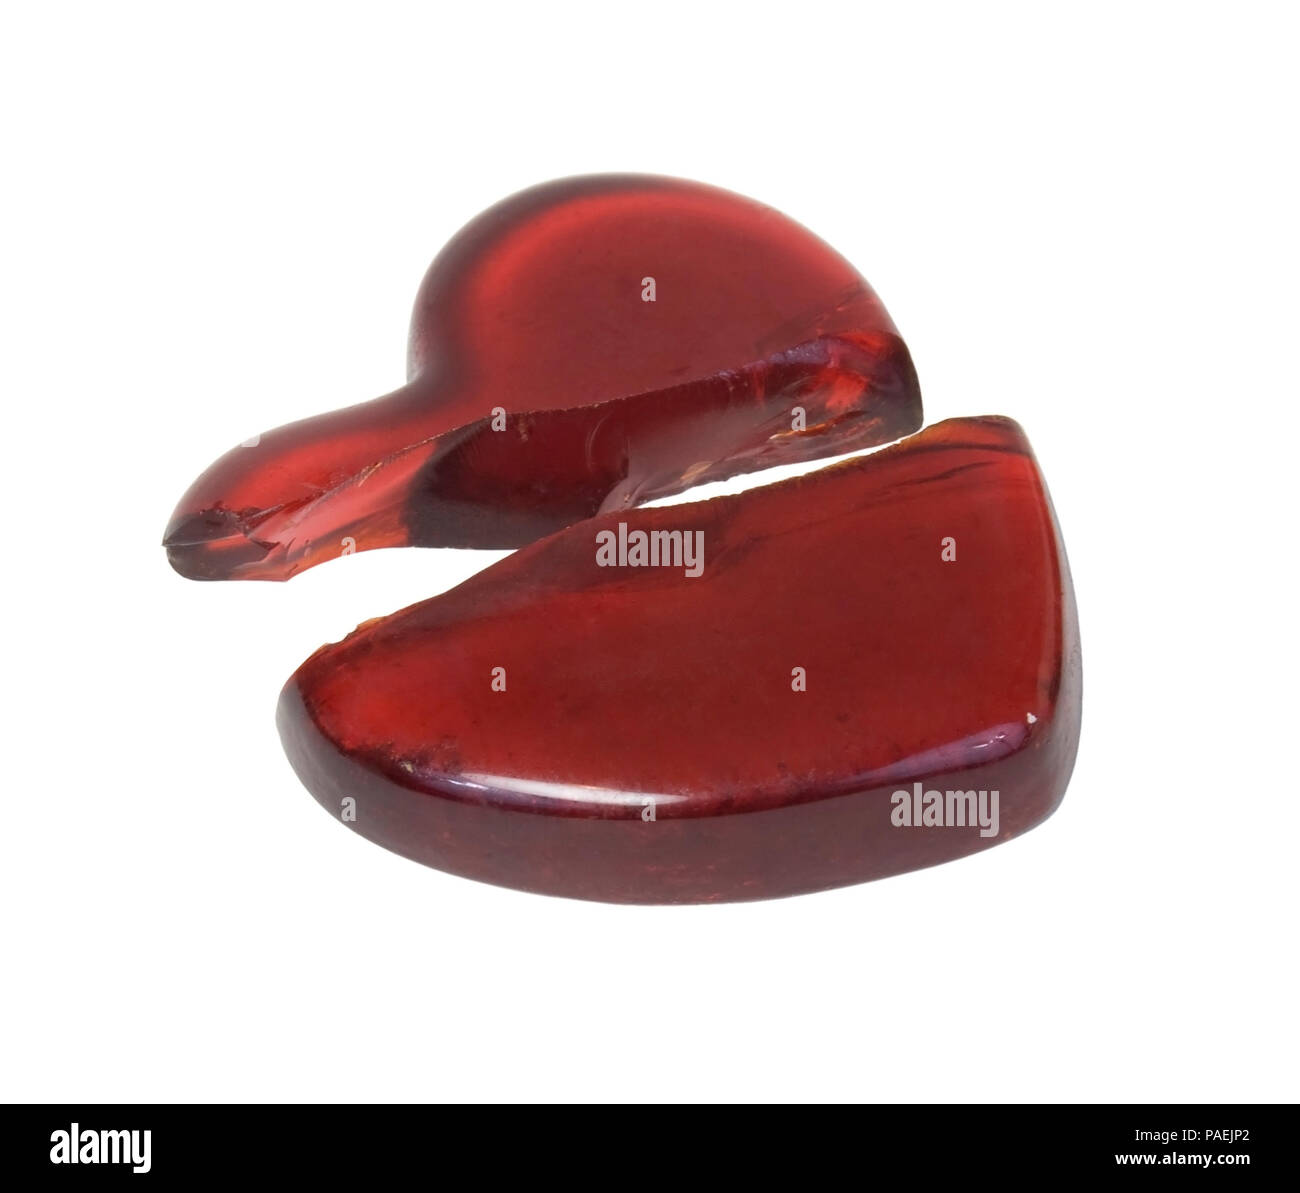 Broken Red glass heart symbolizing a broken heart over a failed romance - path included - Stock Image